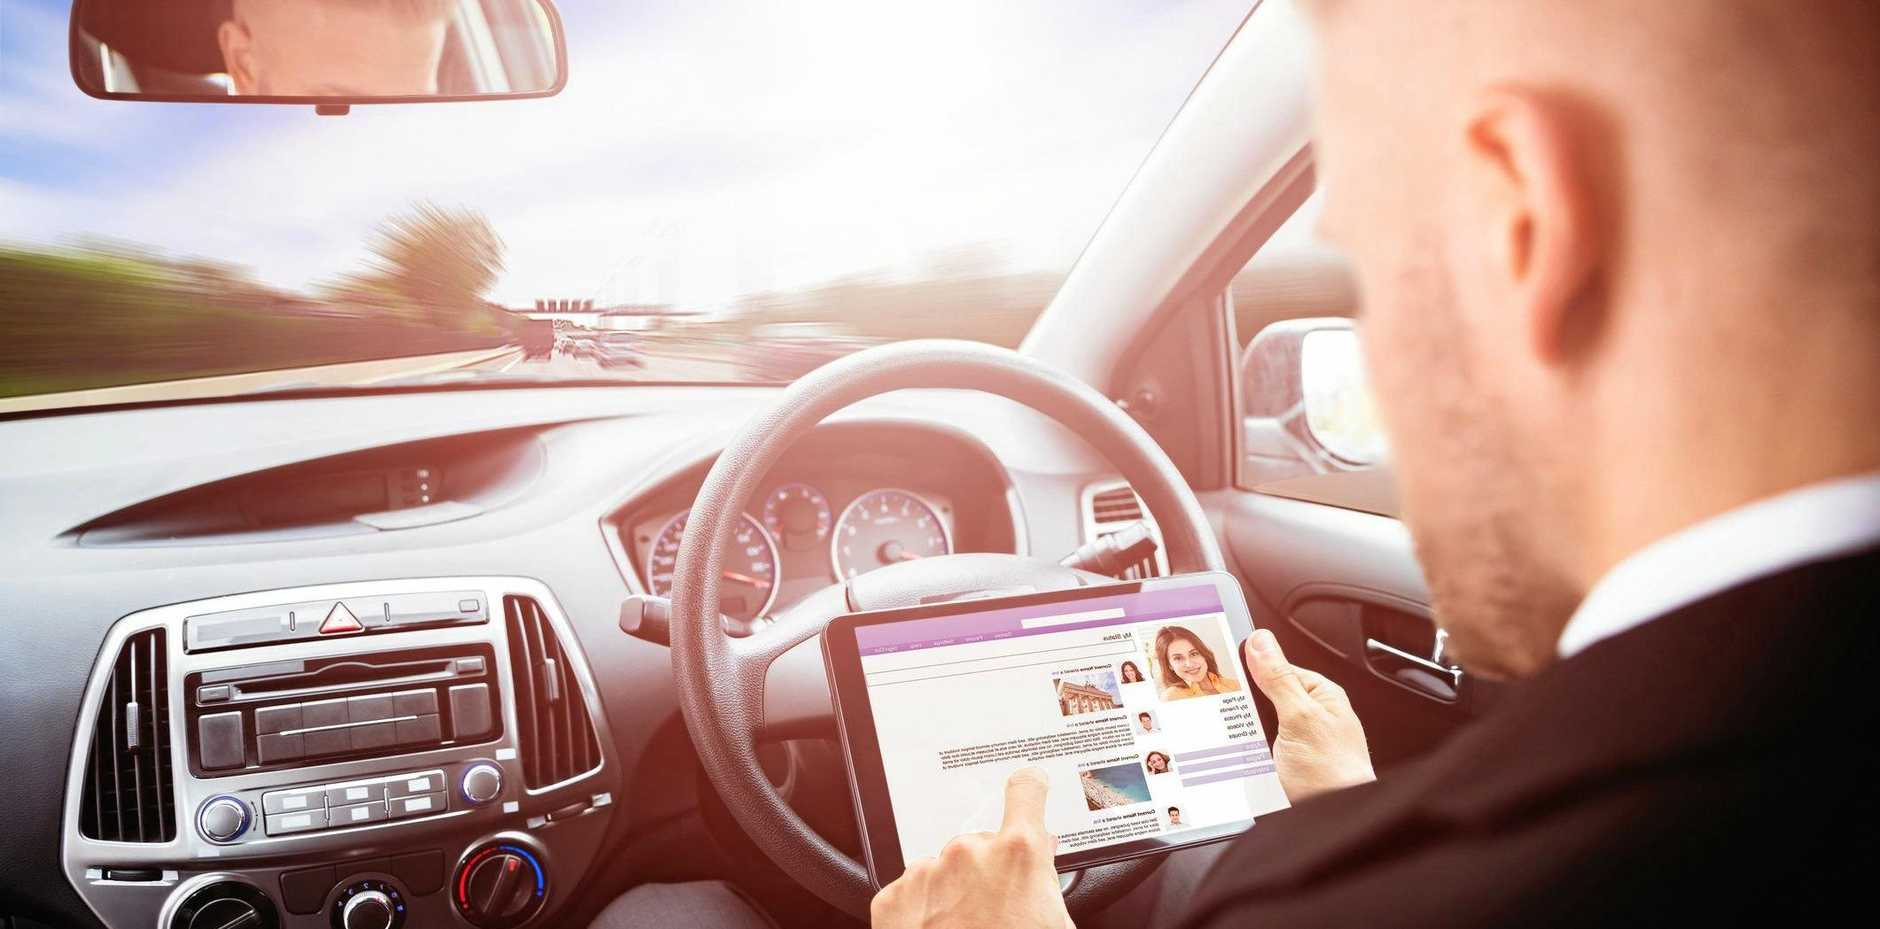 ABOVE: A businessman chats on social media while a driverless car takes care of the rest.